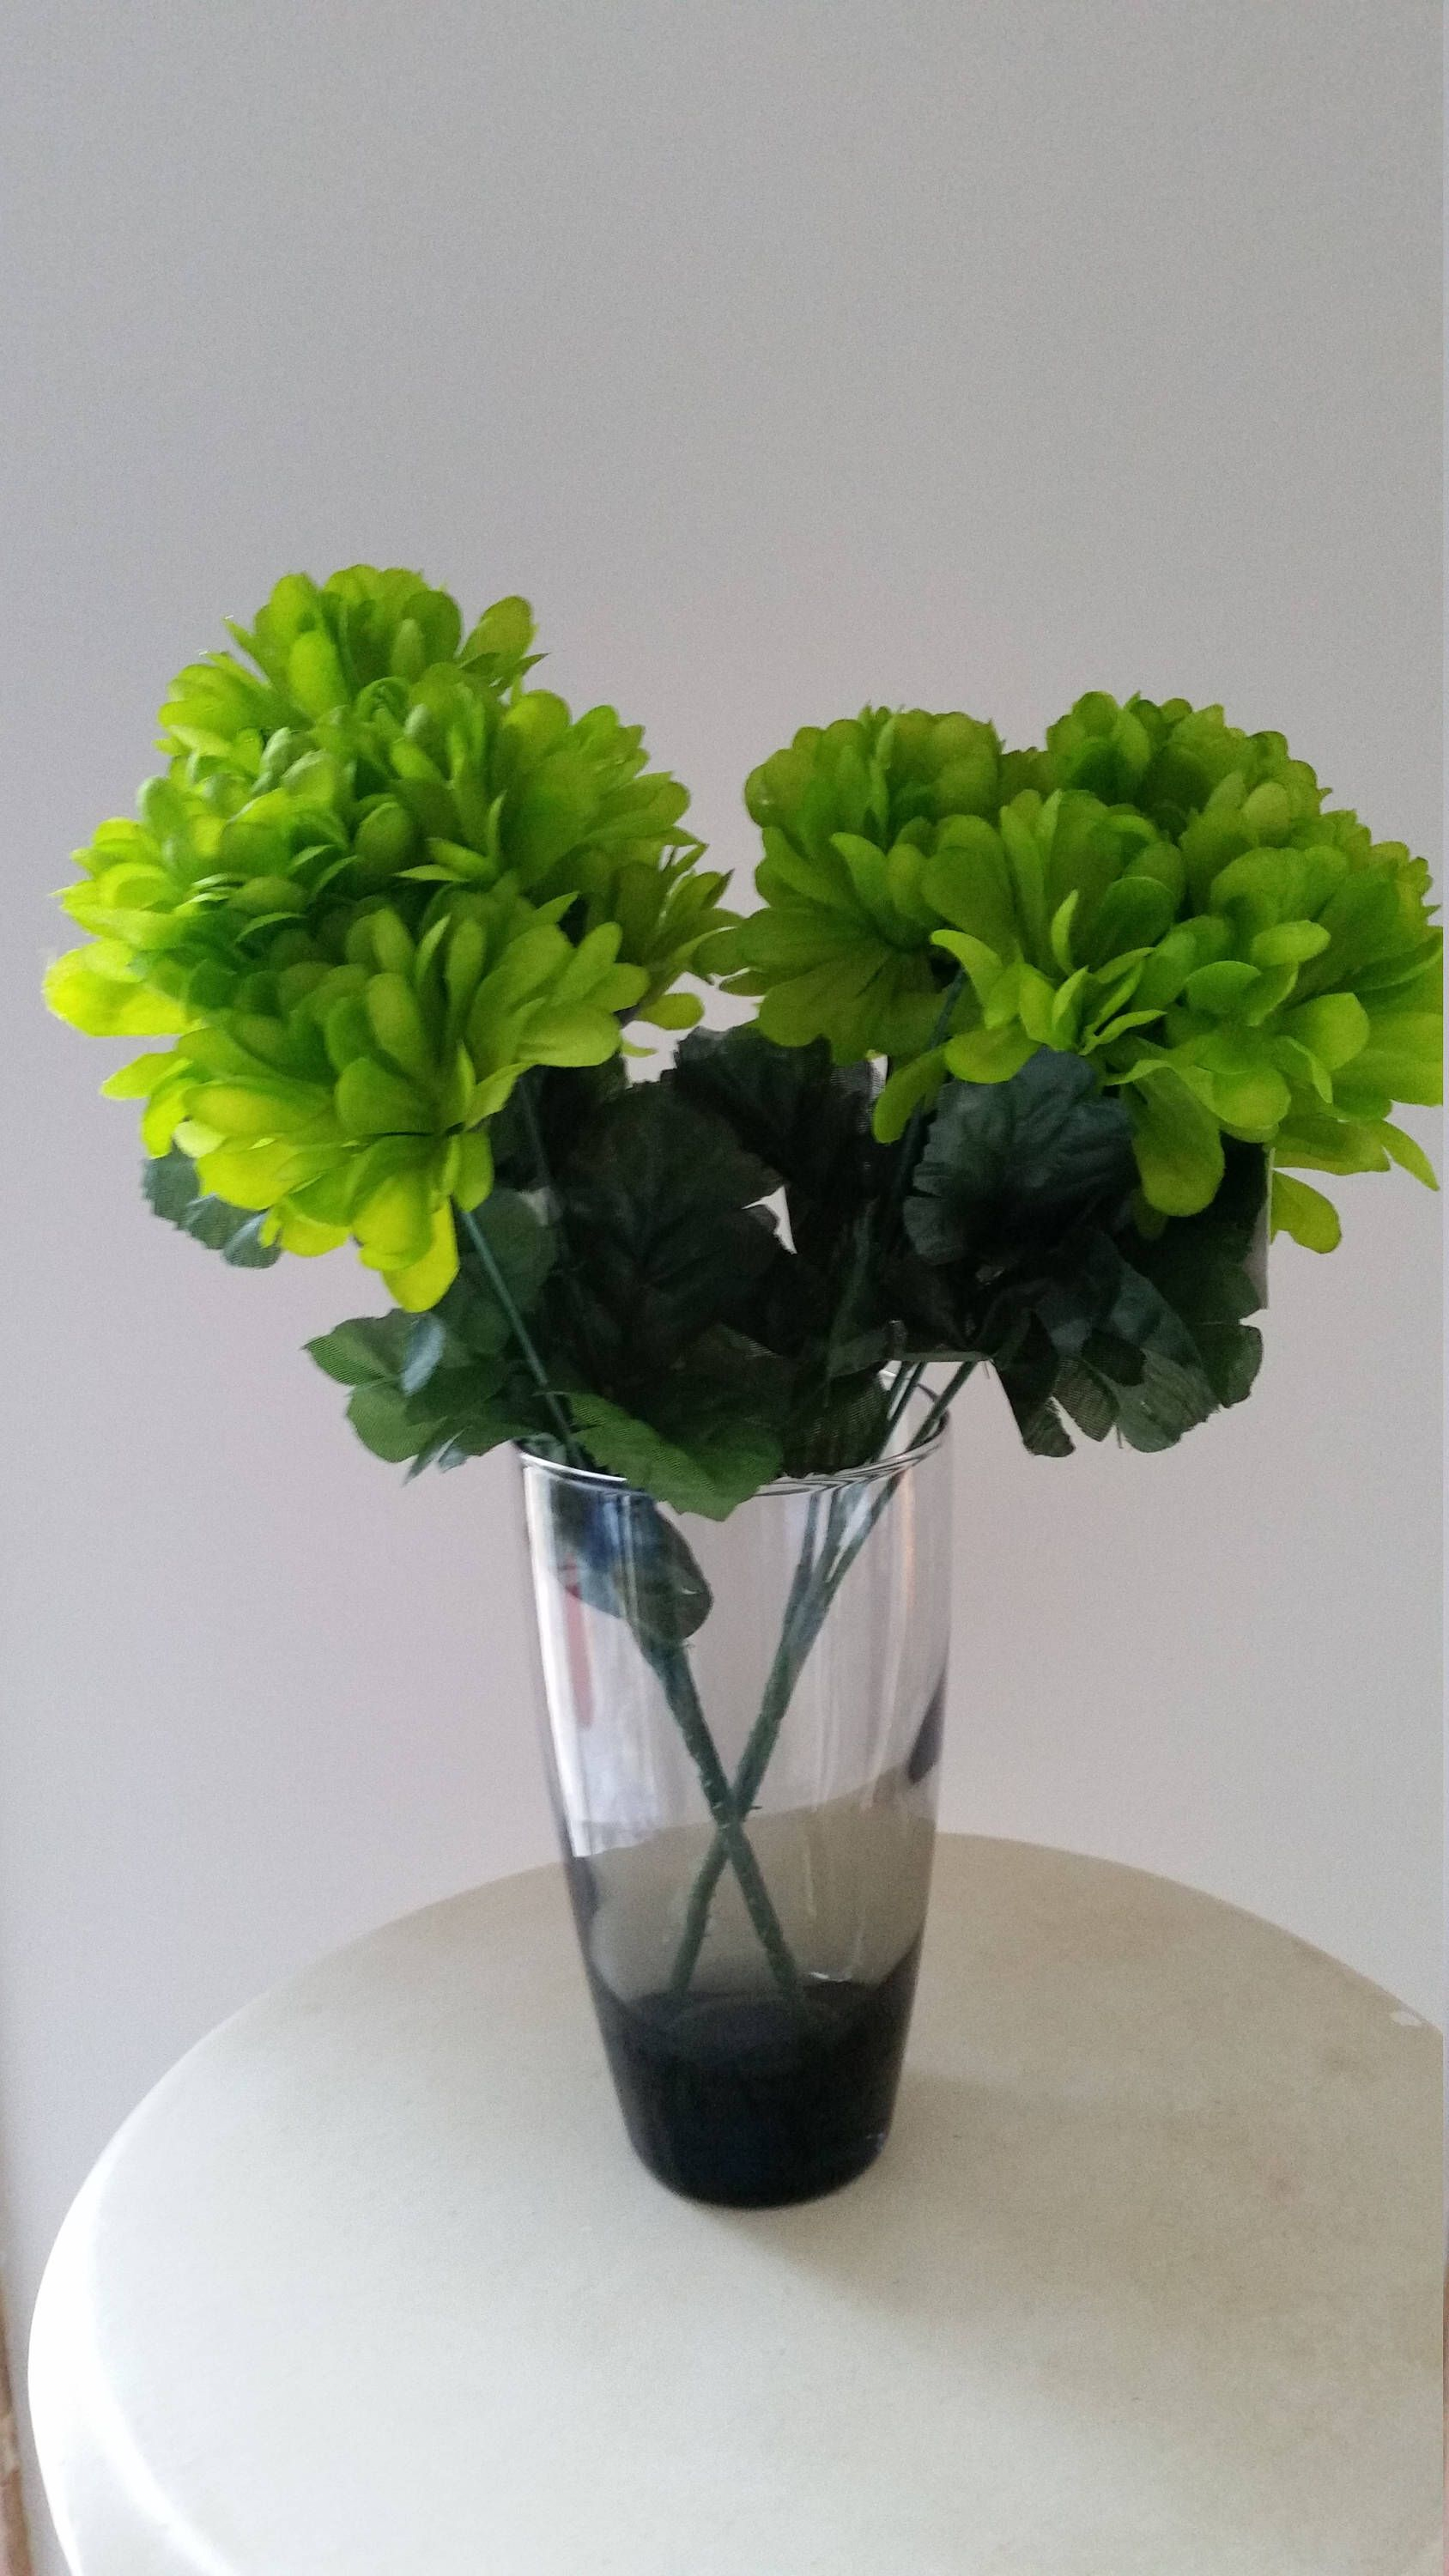 Lime green silk flowers mum carnation bush craft floral supply diy lime green silk flowers mum carnation bush craft floral supply diy bride wedding bouquet making mightylinksfo Images